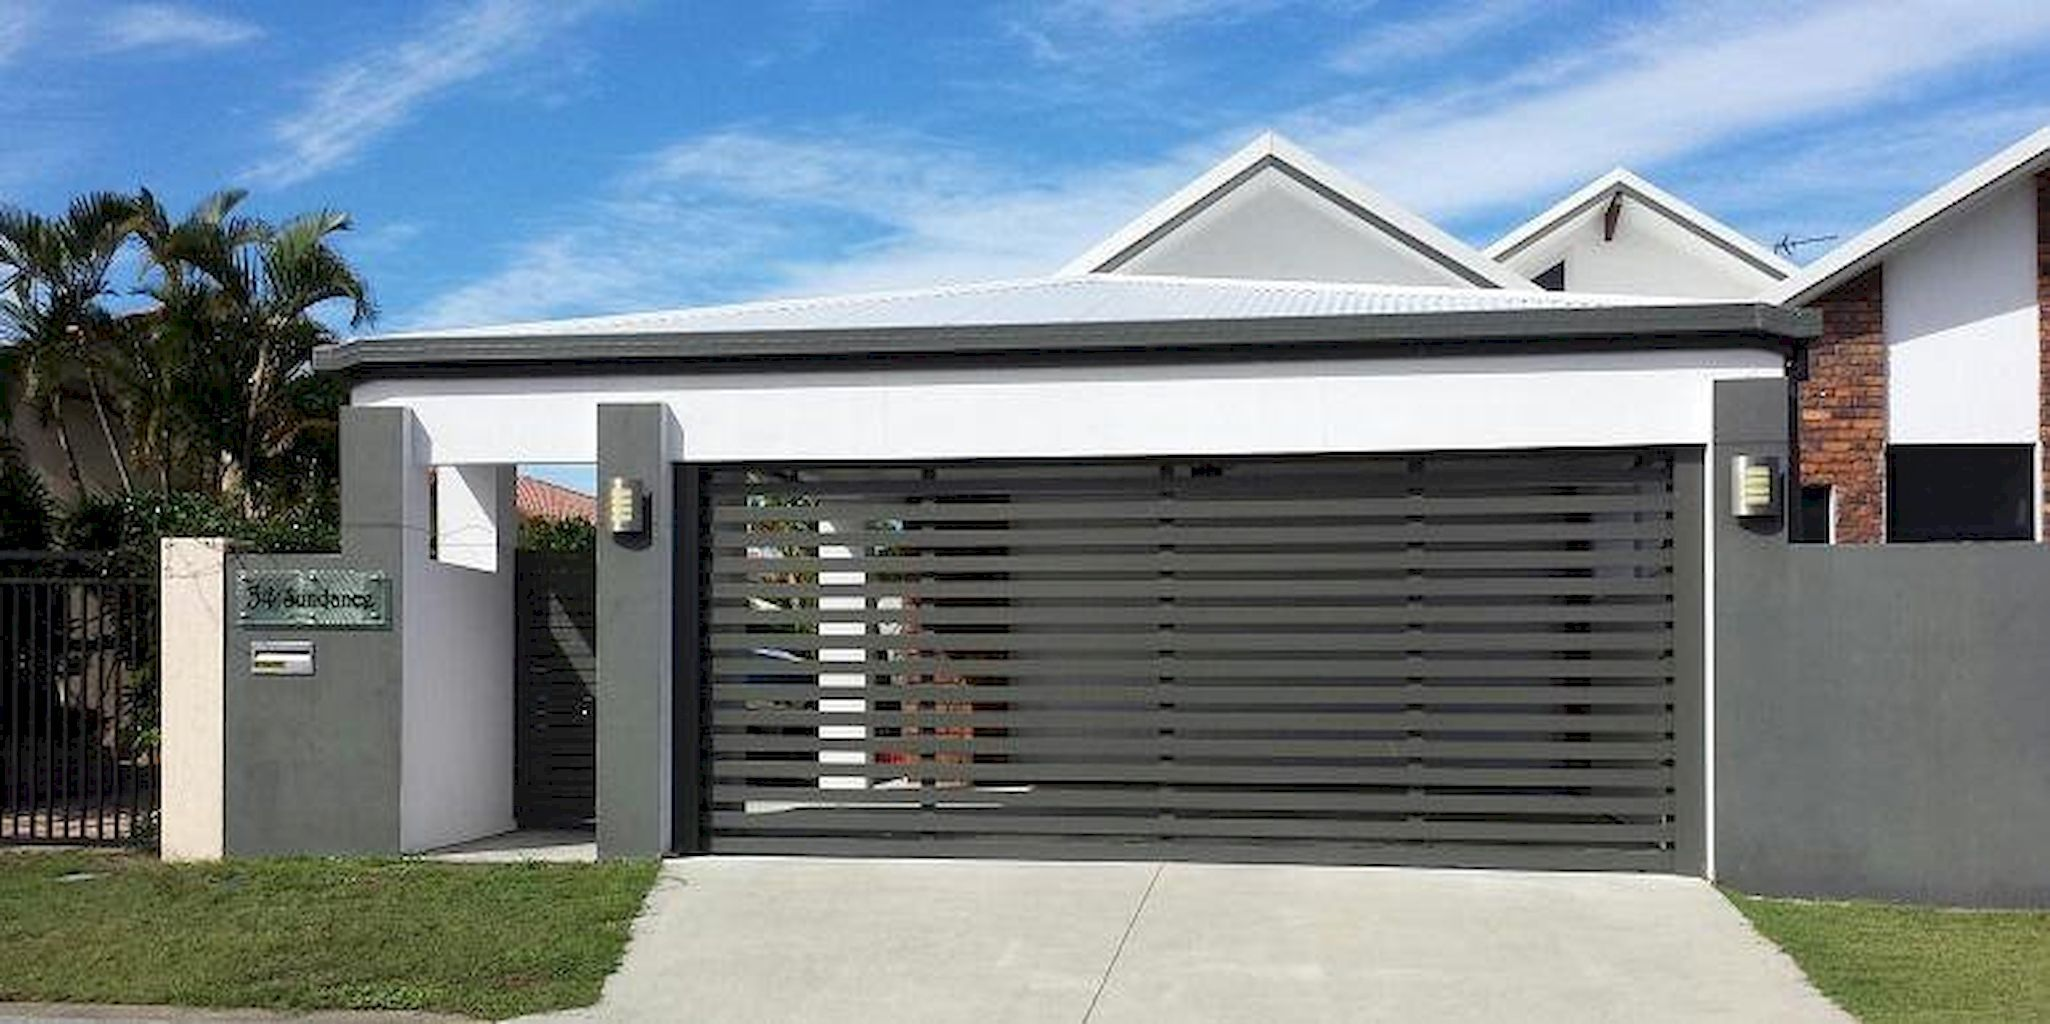 55 adorable modern carports garage designs ideas modern for Garage styles pictures